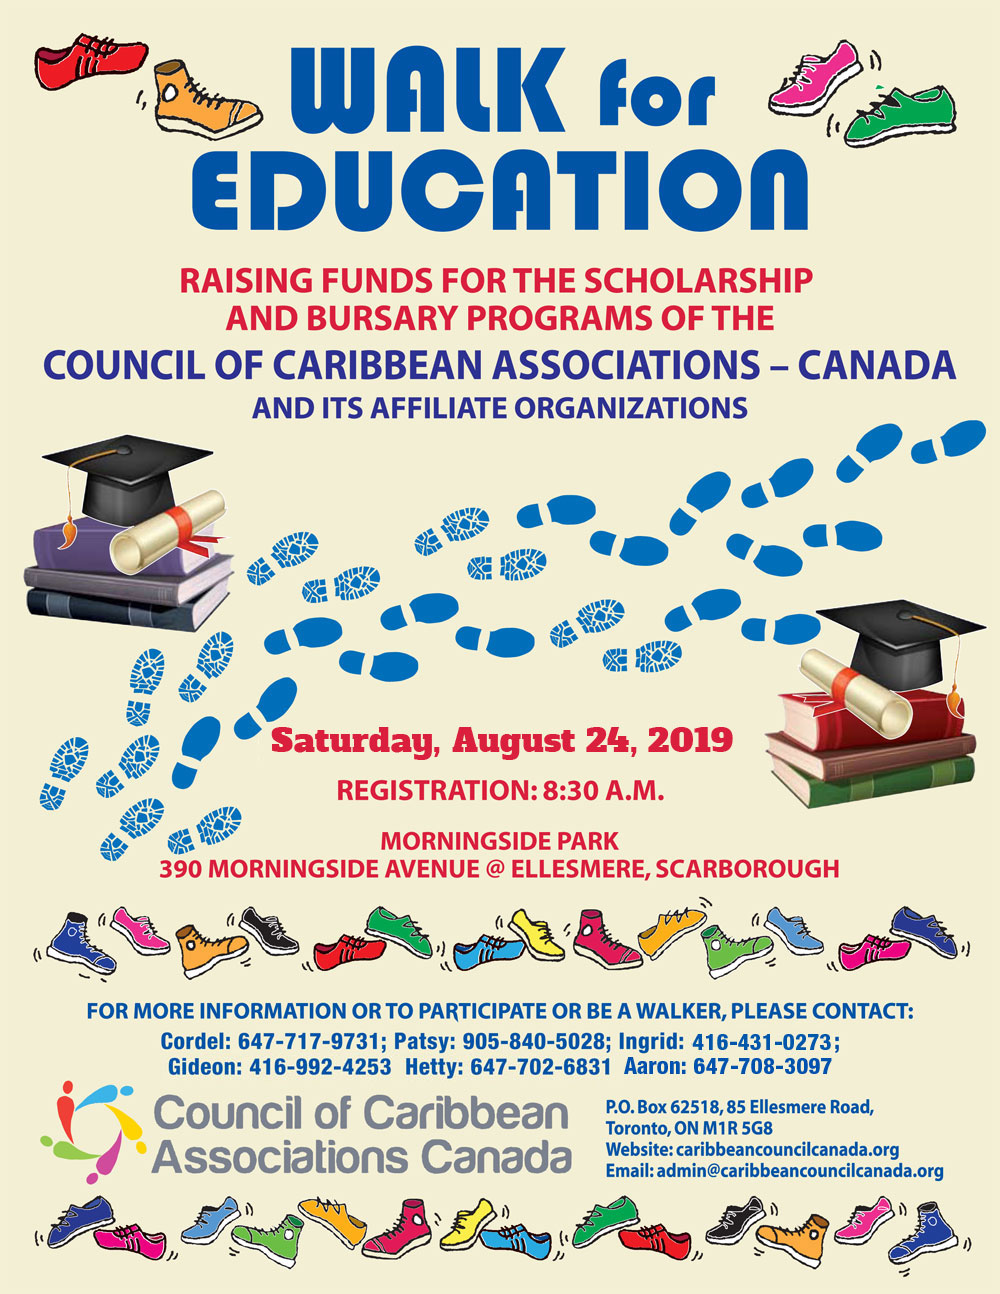 Saturday August 24, 2019 - Walk for Education